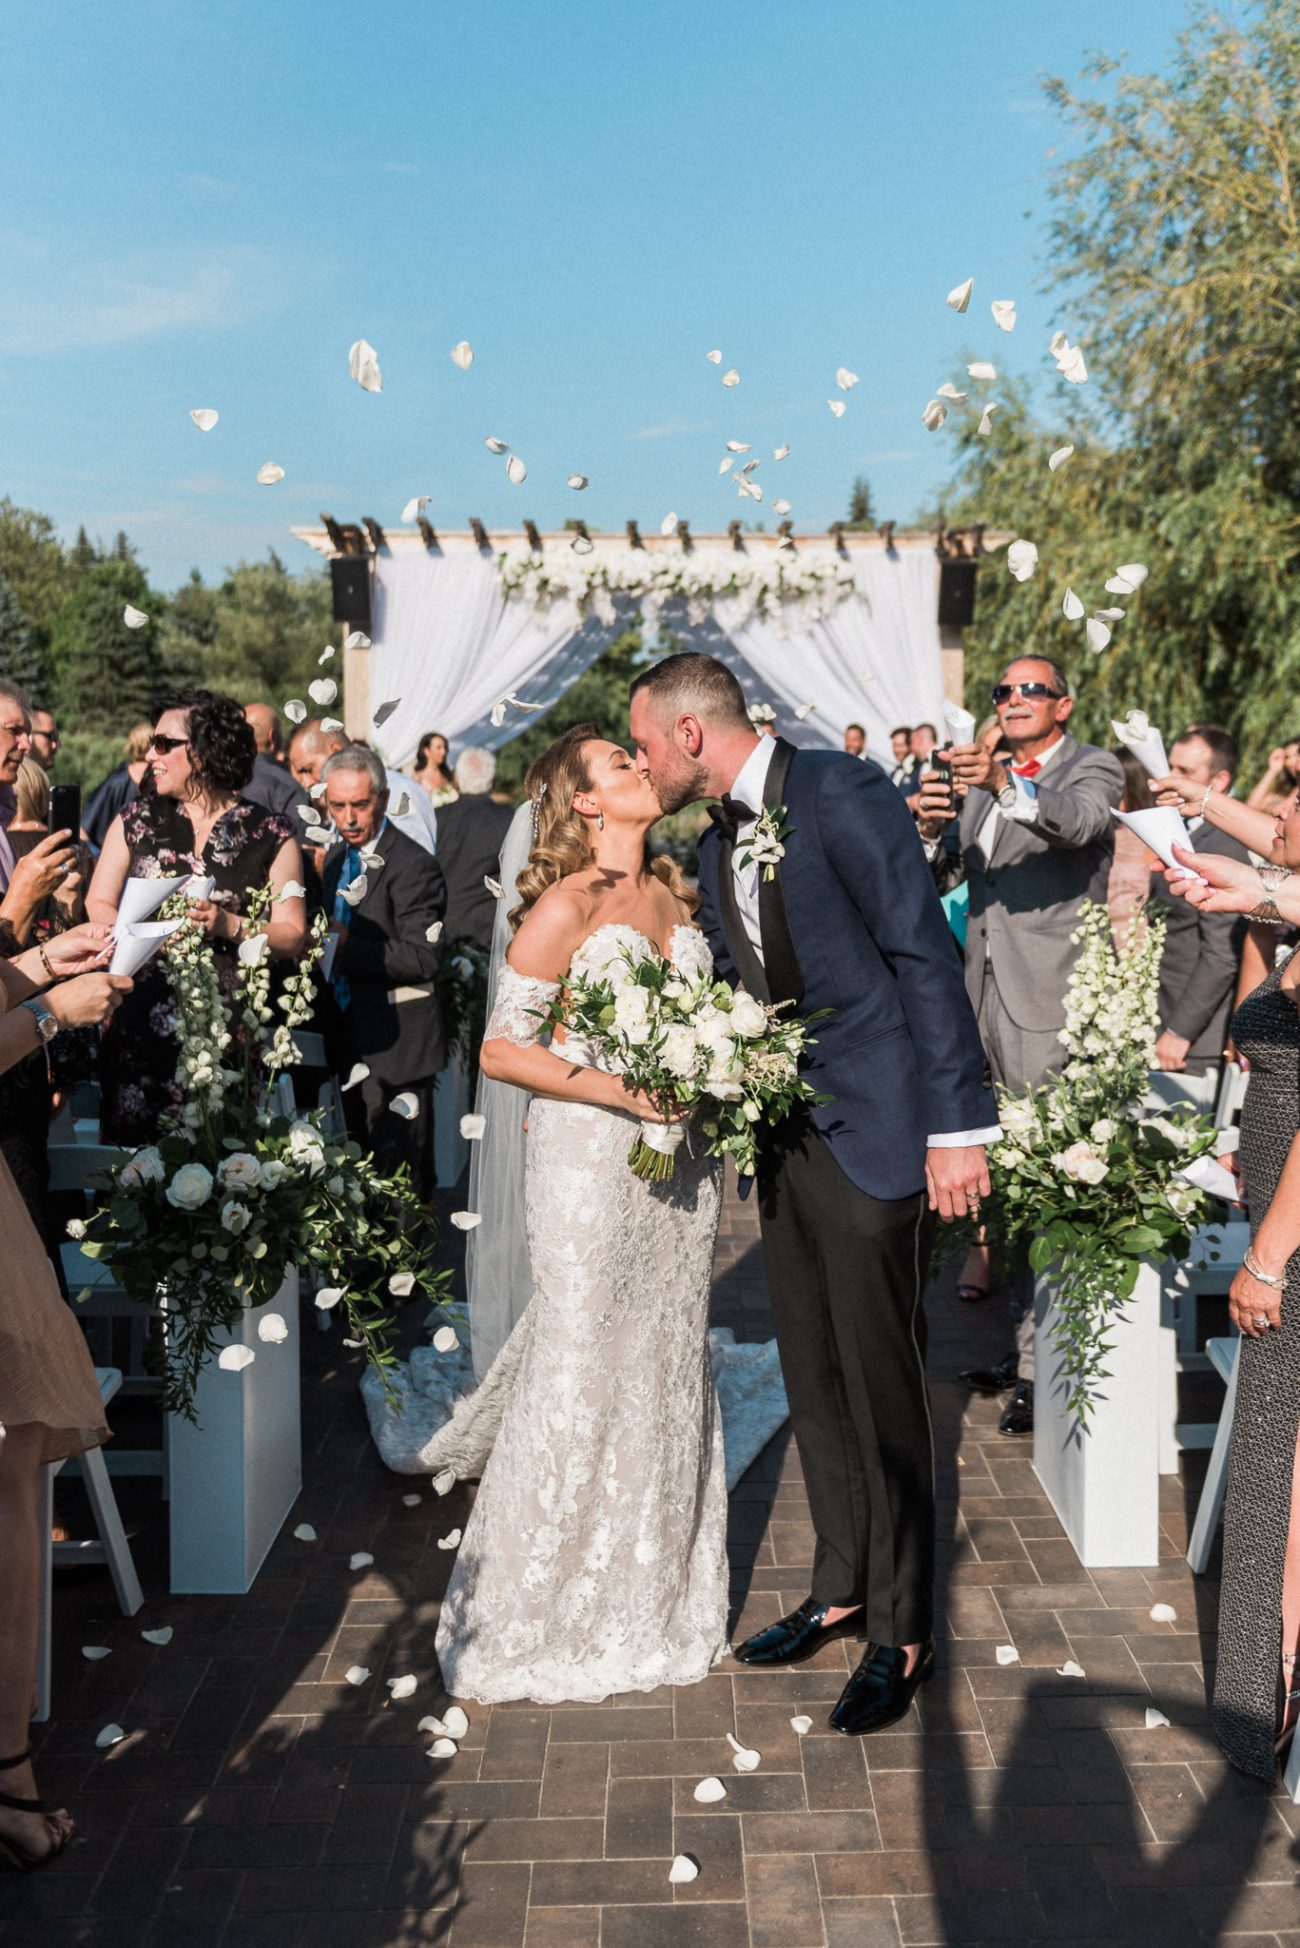 Happy newlyweds kissing after outdoor wedding ceremony